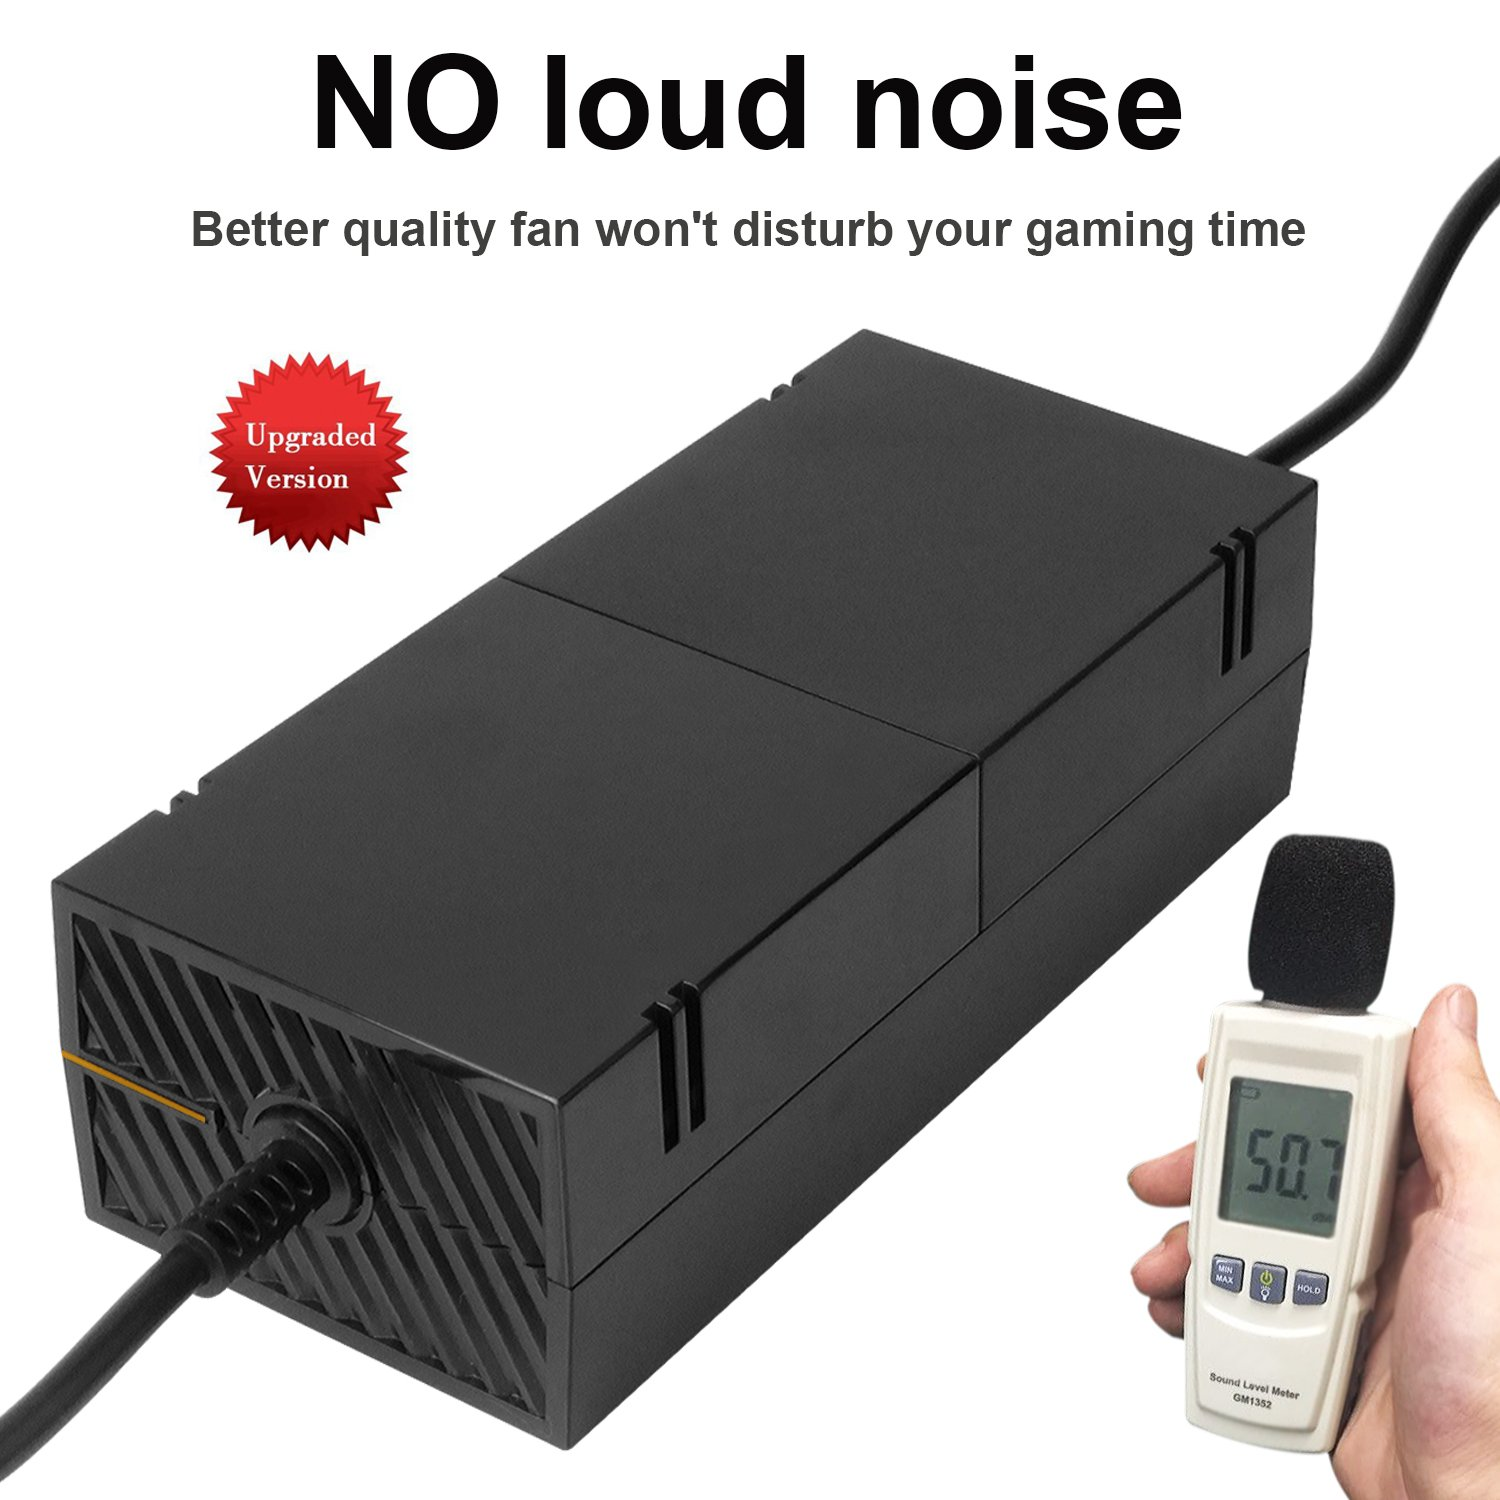 Xbox One Power Supply Brick,[NEWEST QUIETEST VERSION] AC Adapter Power Cable Charger Cord Replacement Kit for Xbox One Auto Voltage 100-240V, Black